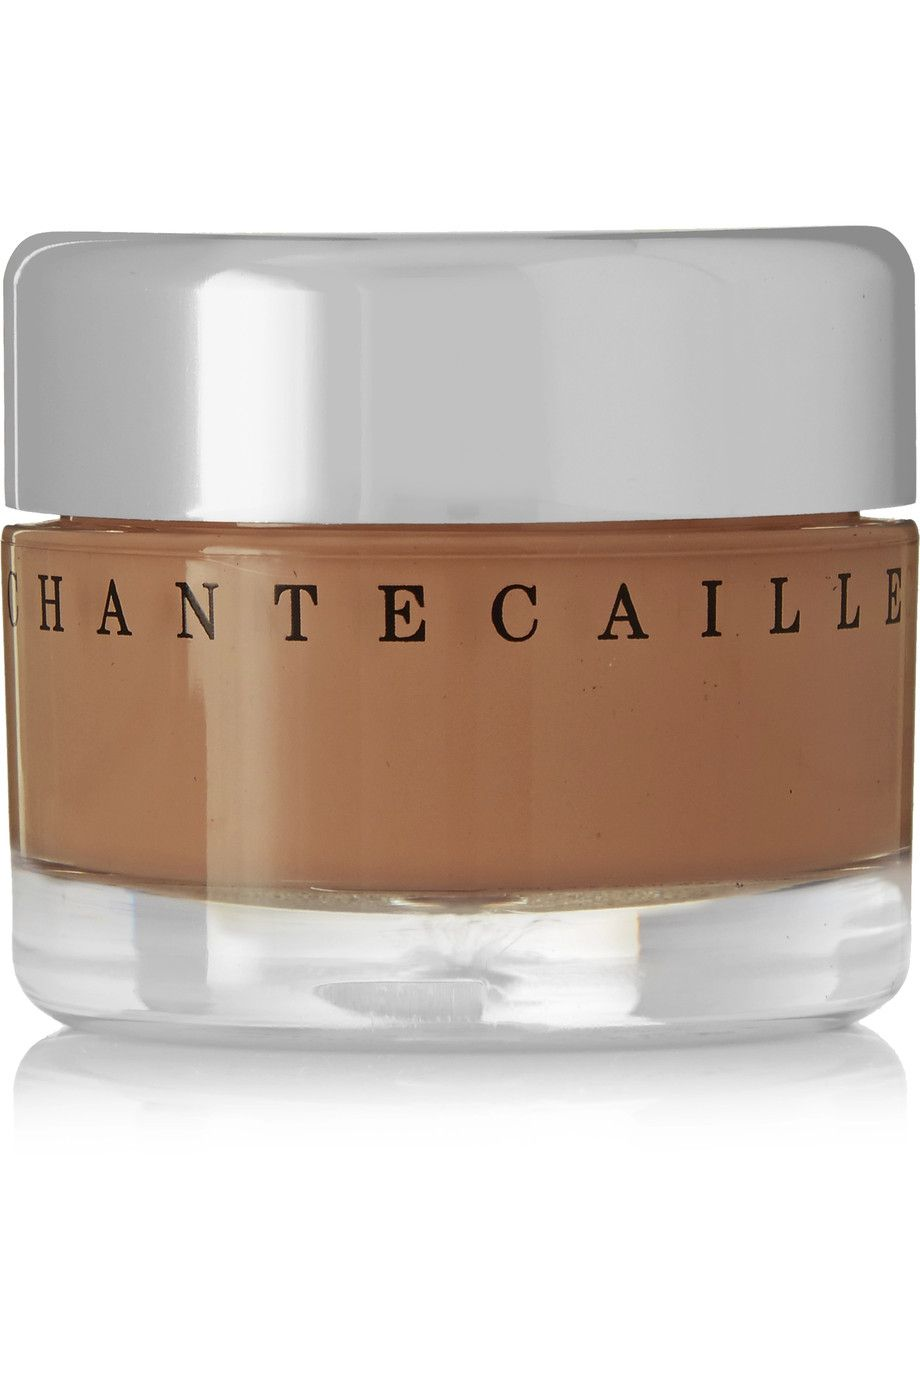 Chantecaille Future Skin Oil Free Gel Foundation For Acne